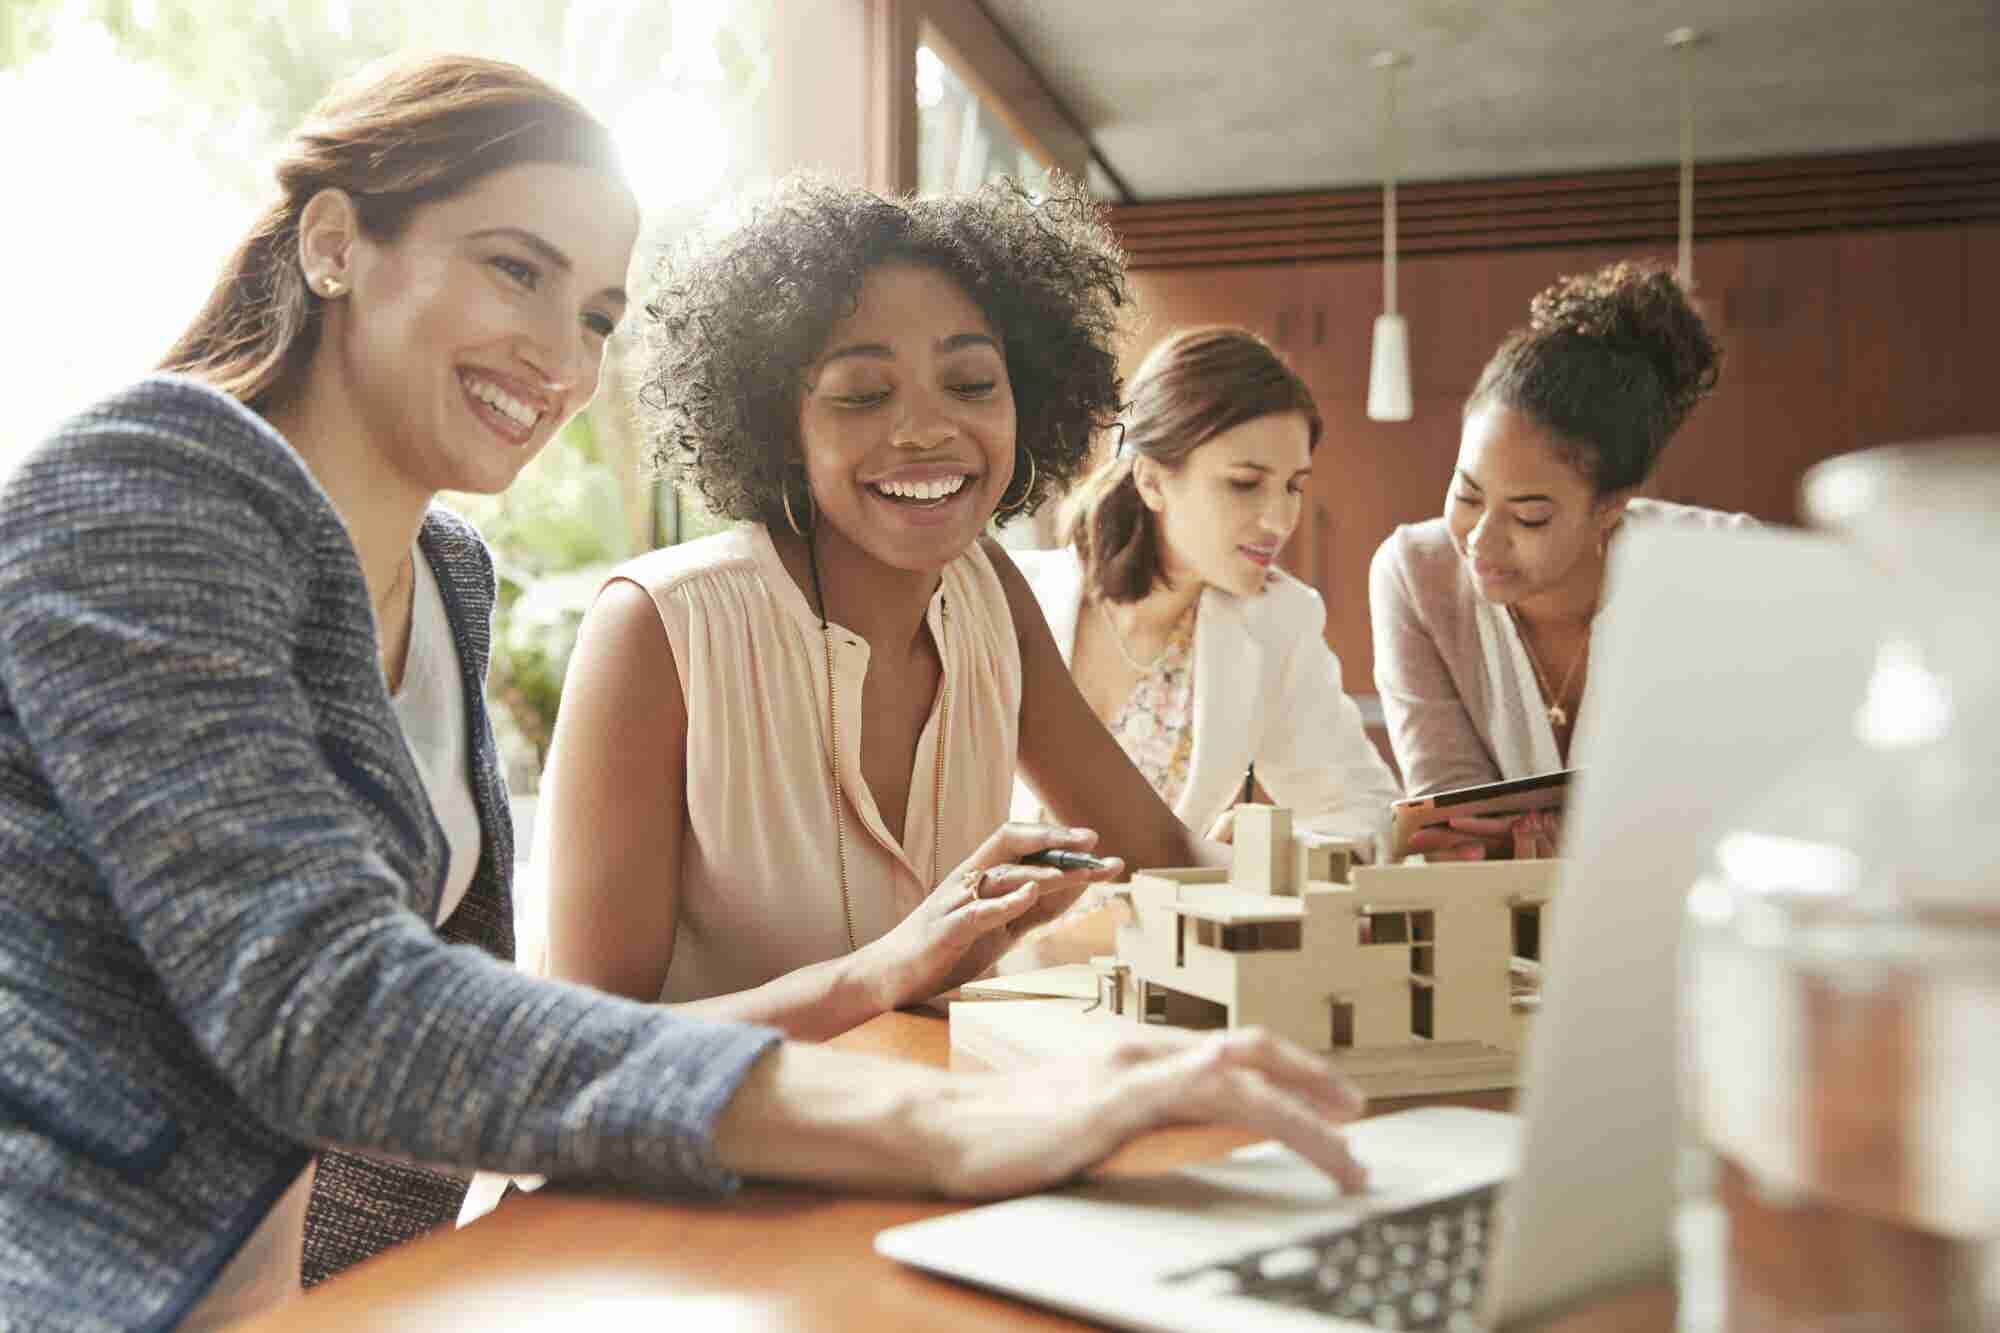 'NextGen Women' Outperform (Men) in Business. And They're Coming Into...